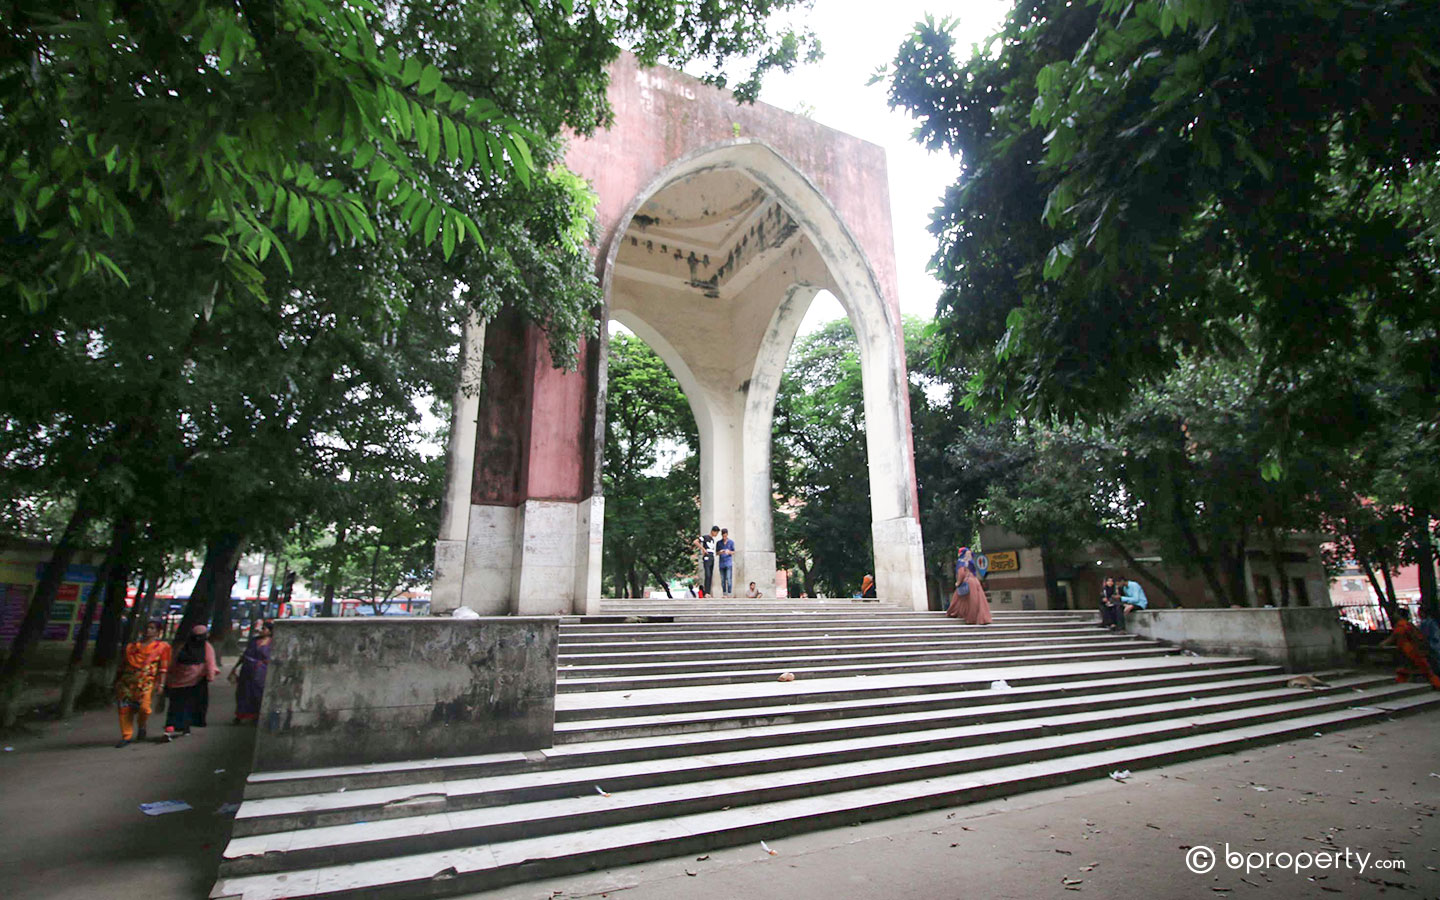 students makes it one of the most popular public parks to visit in Dhaka